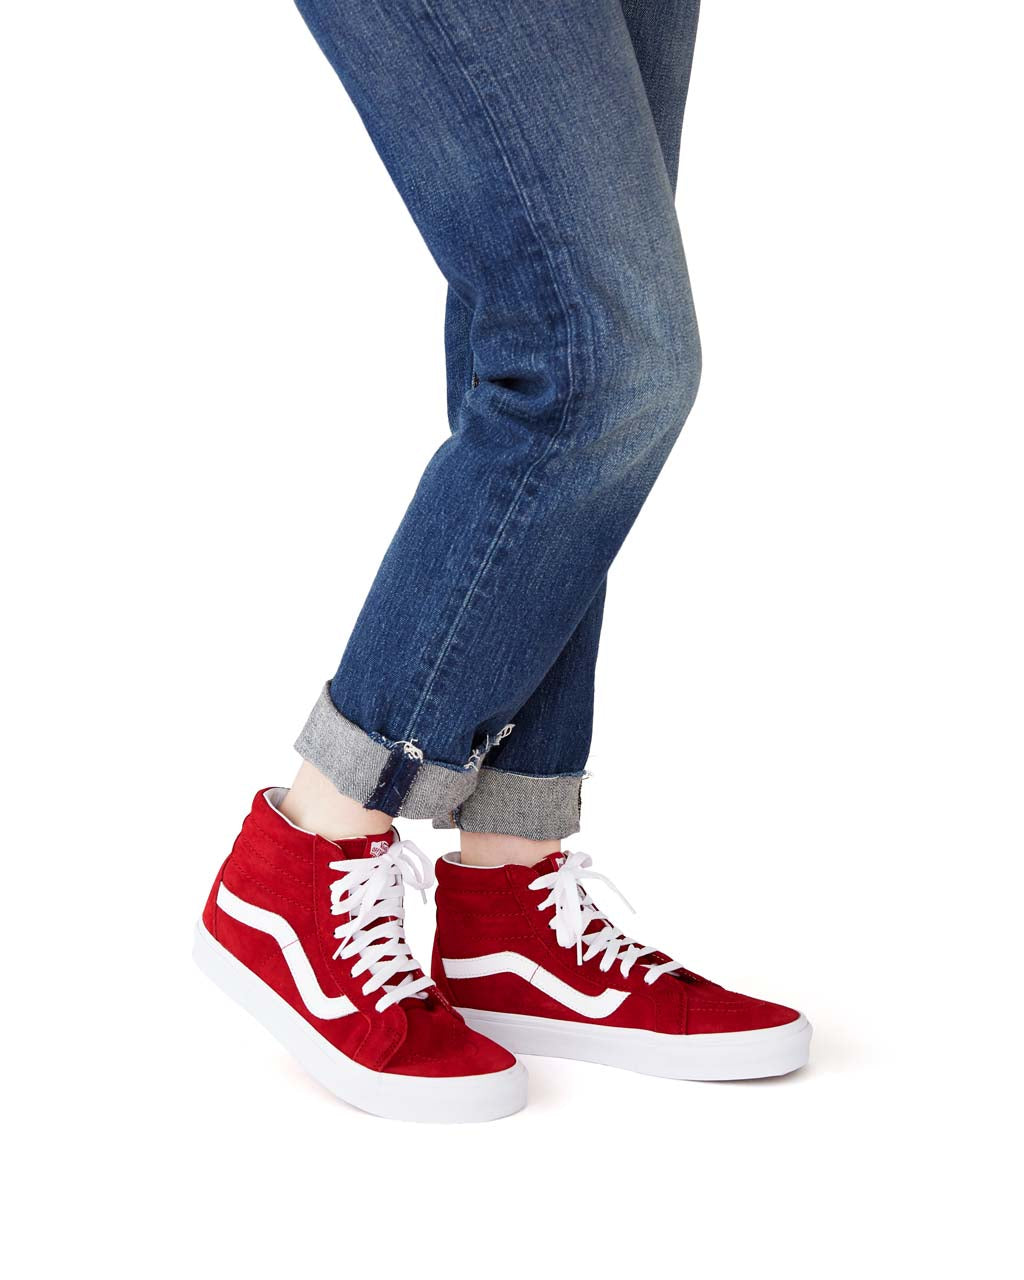 3c23b06b6f0d14 Sk8-Hi - Red Suede by vans - shoes - ban.do